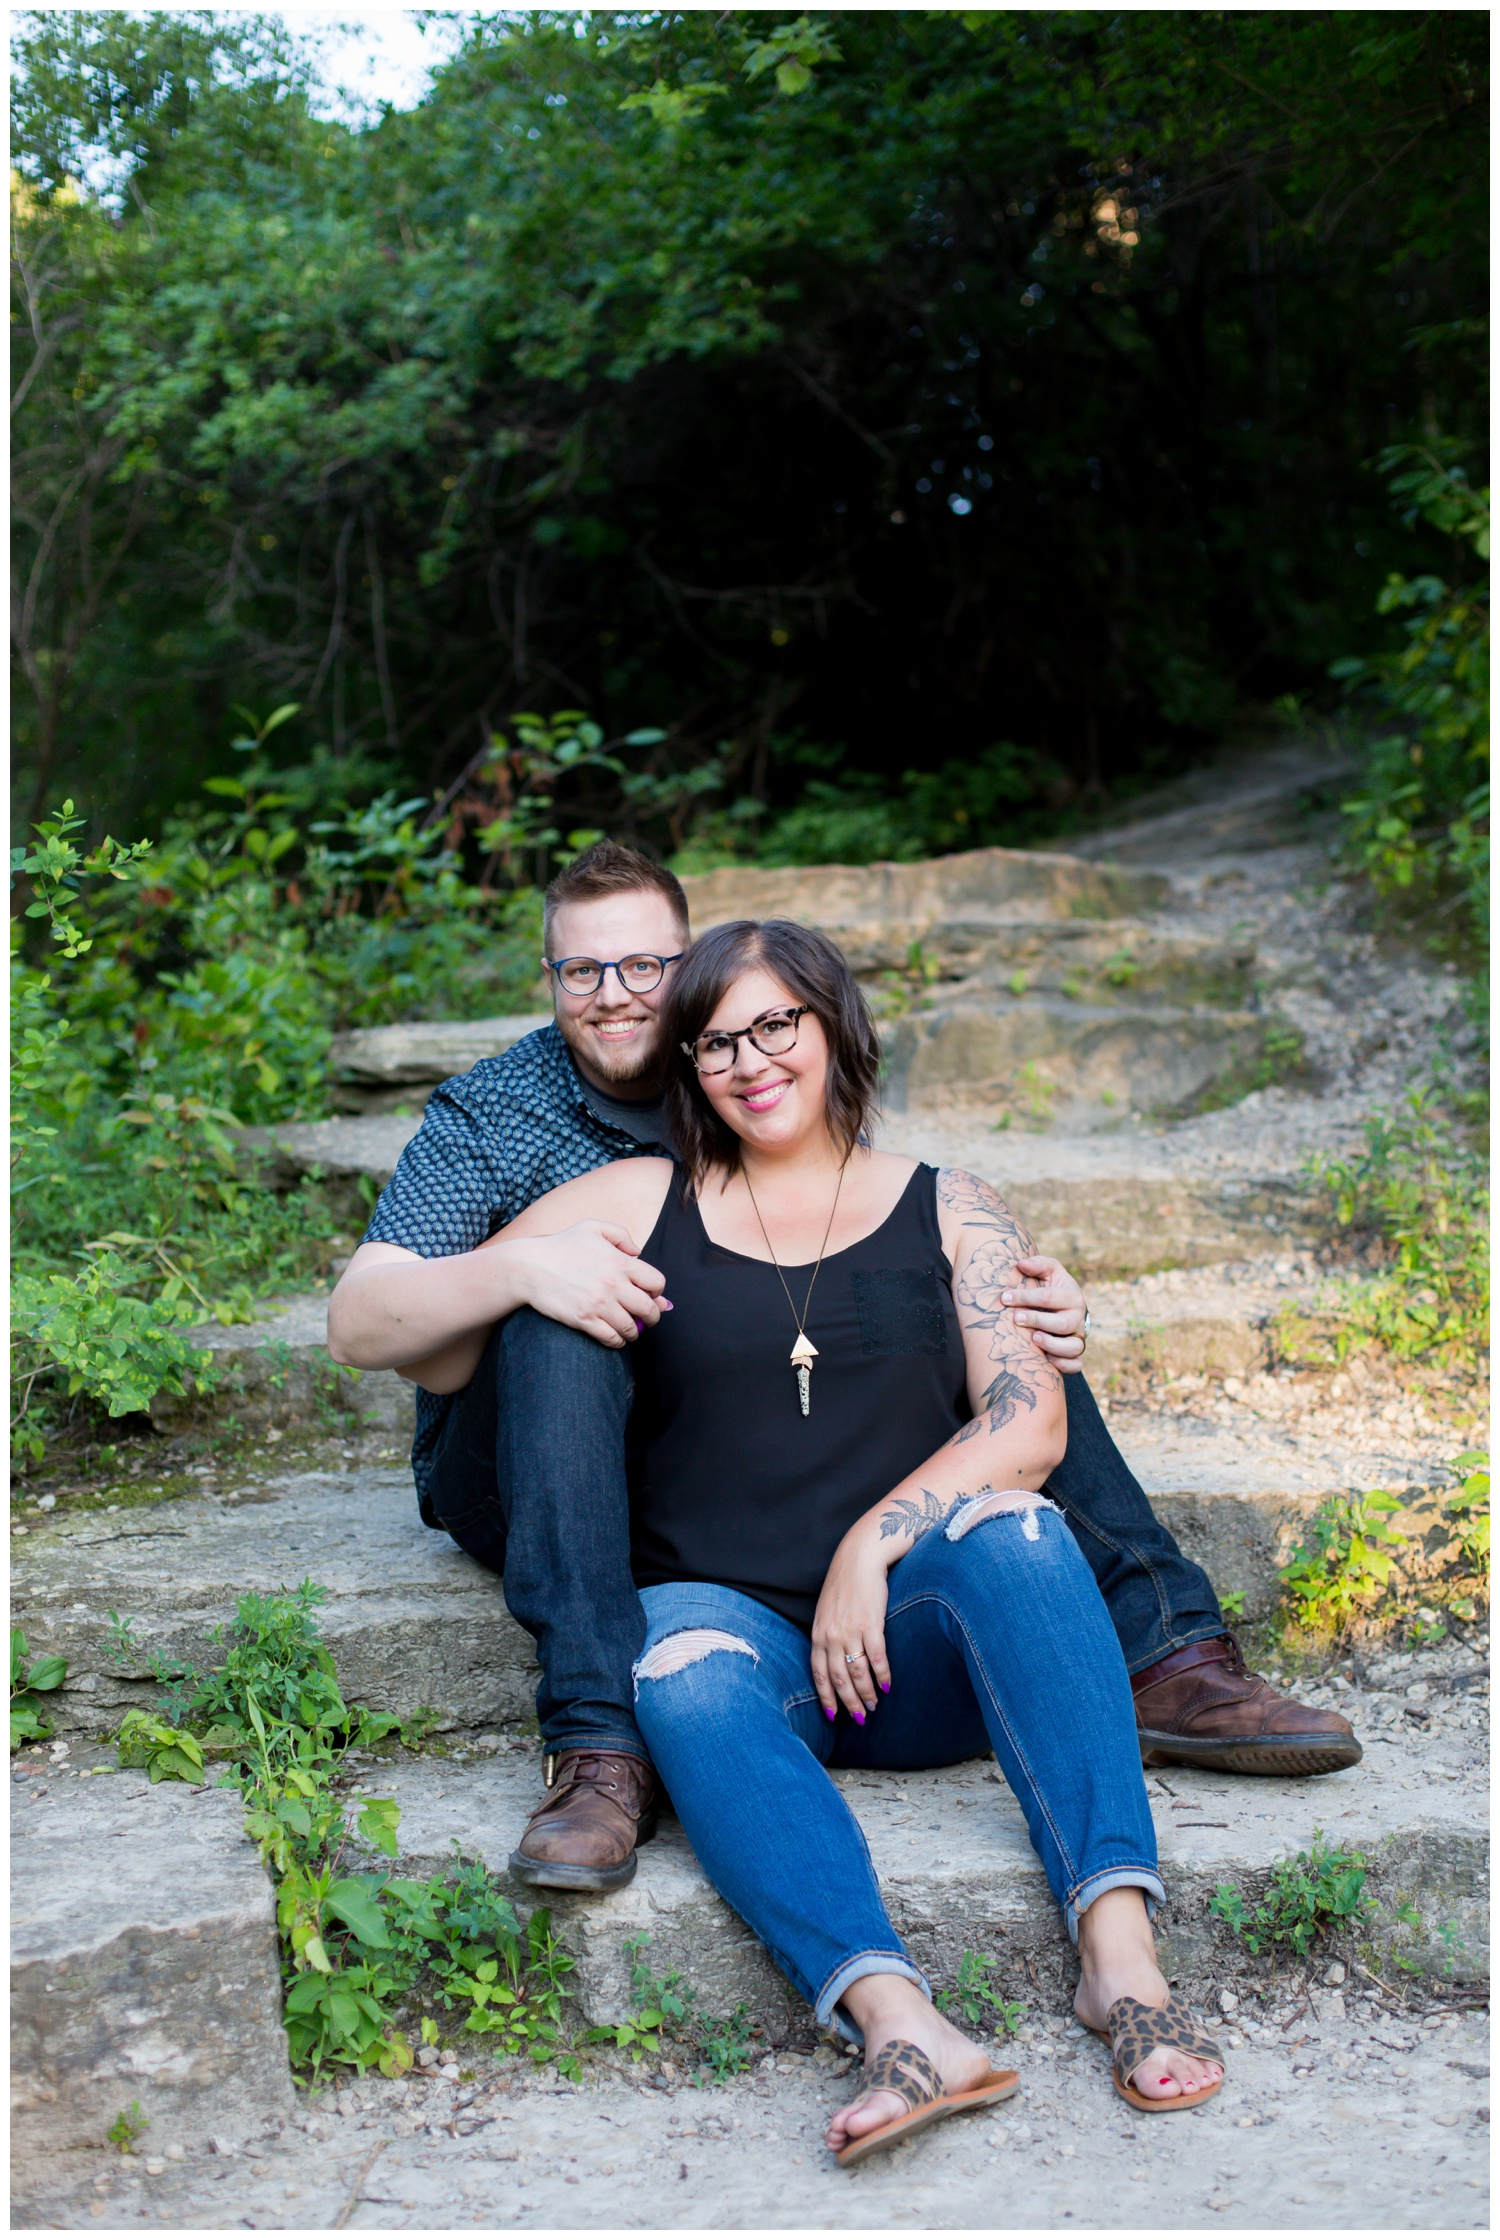 Kate-Alison-Photography-Caitlin-Tom-St-Paul-Couples-Session-49-1.jpg